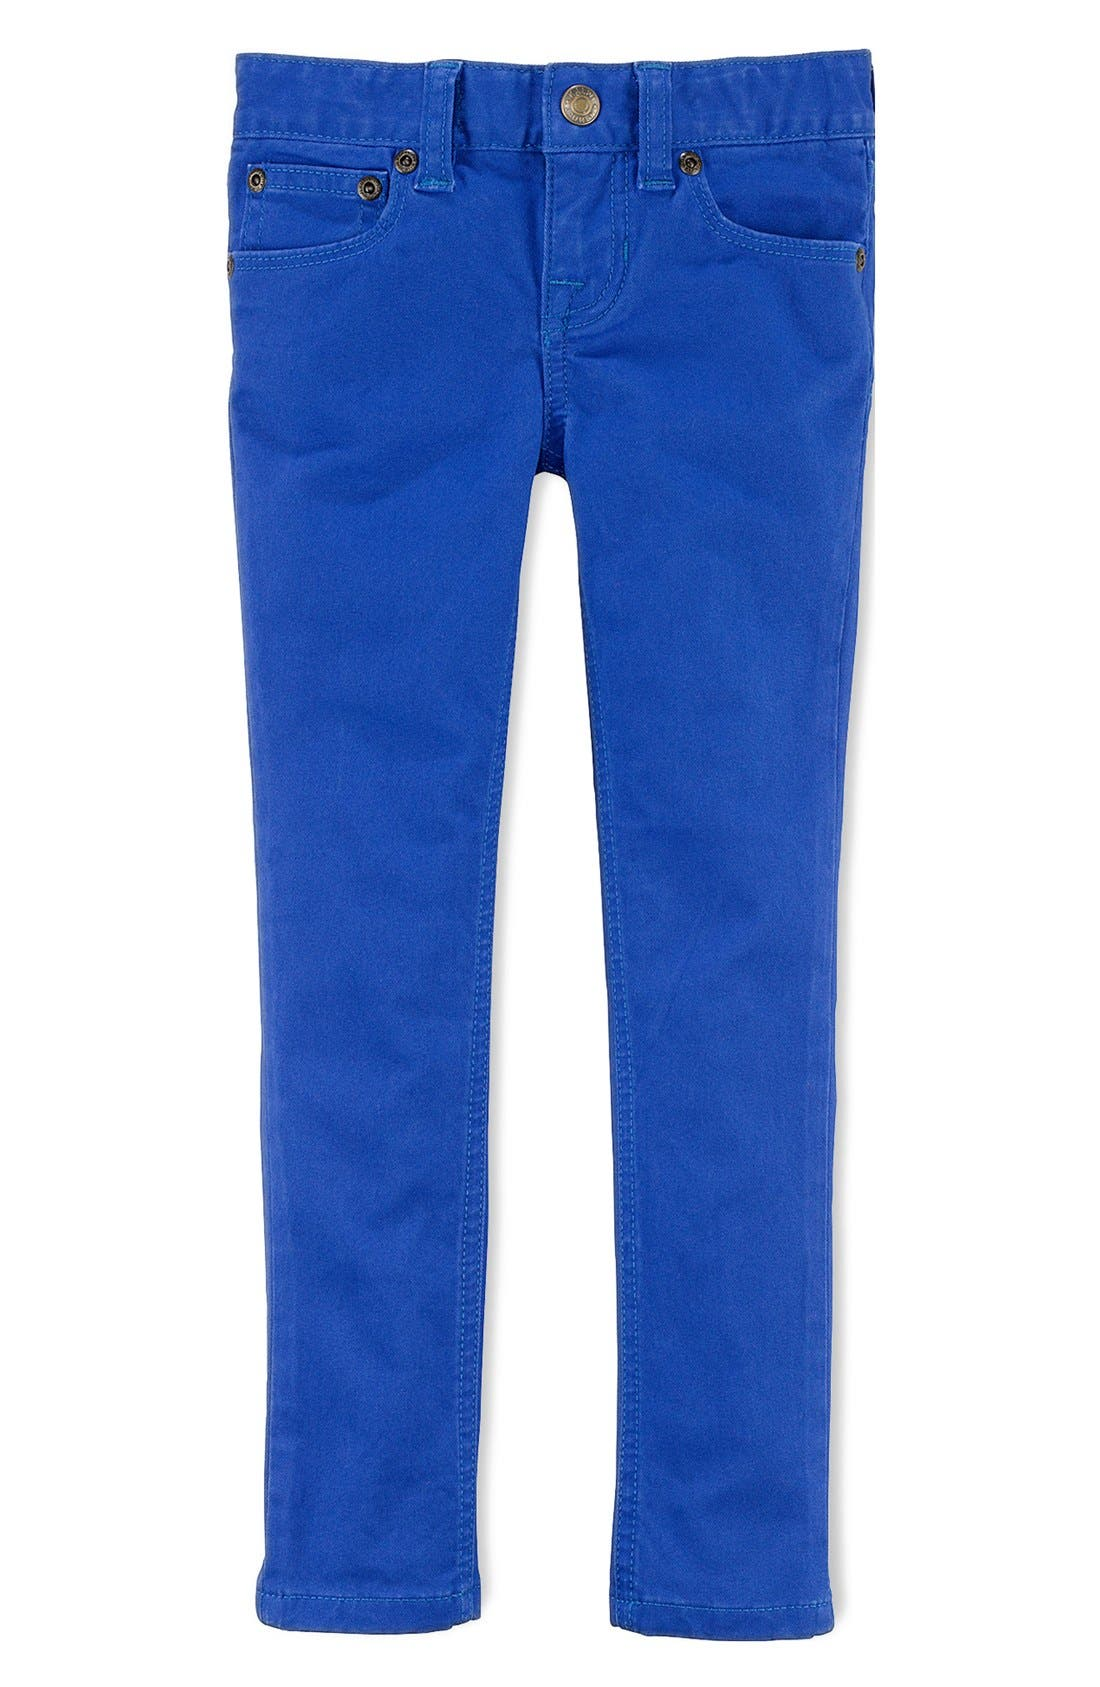 Alternate Image 1 Selected - Ralph Lauren Skinny Jeans (Toddler Girls)